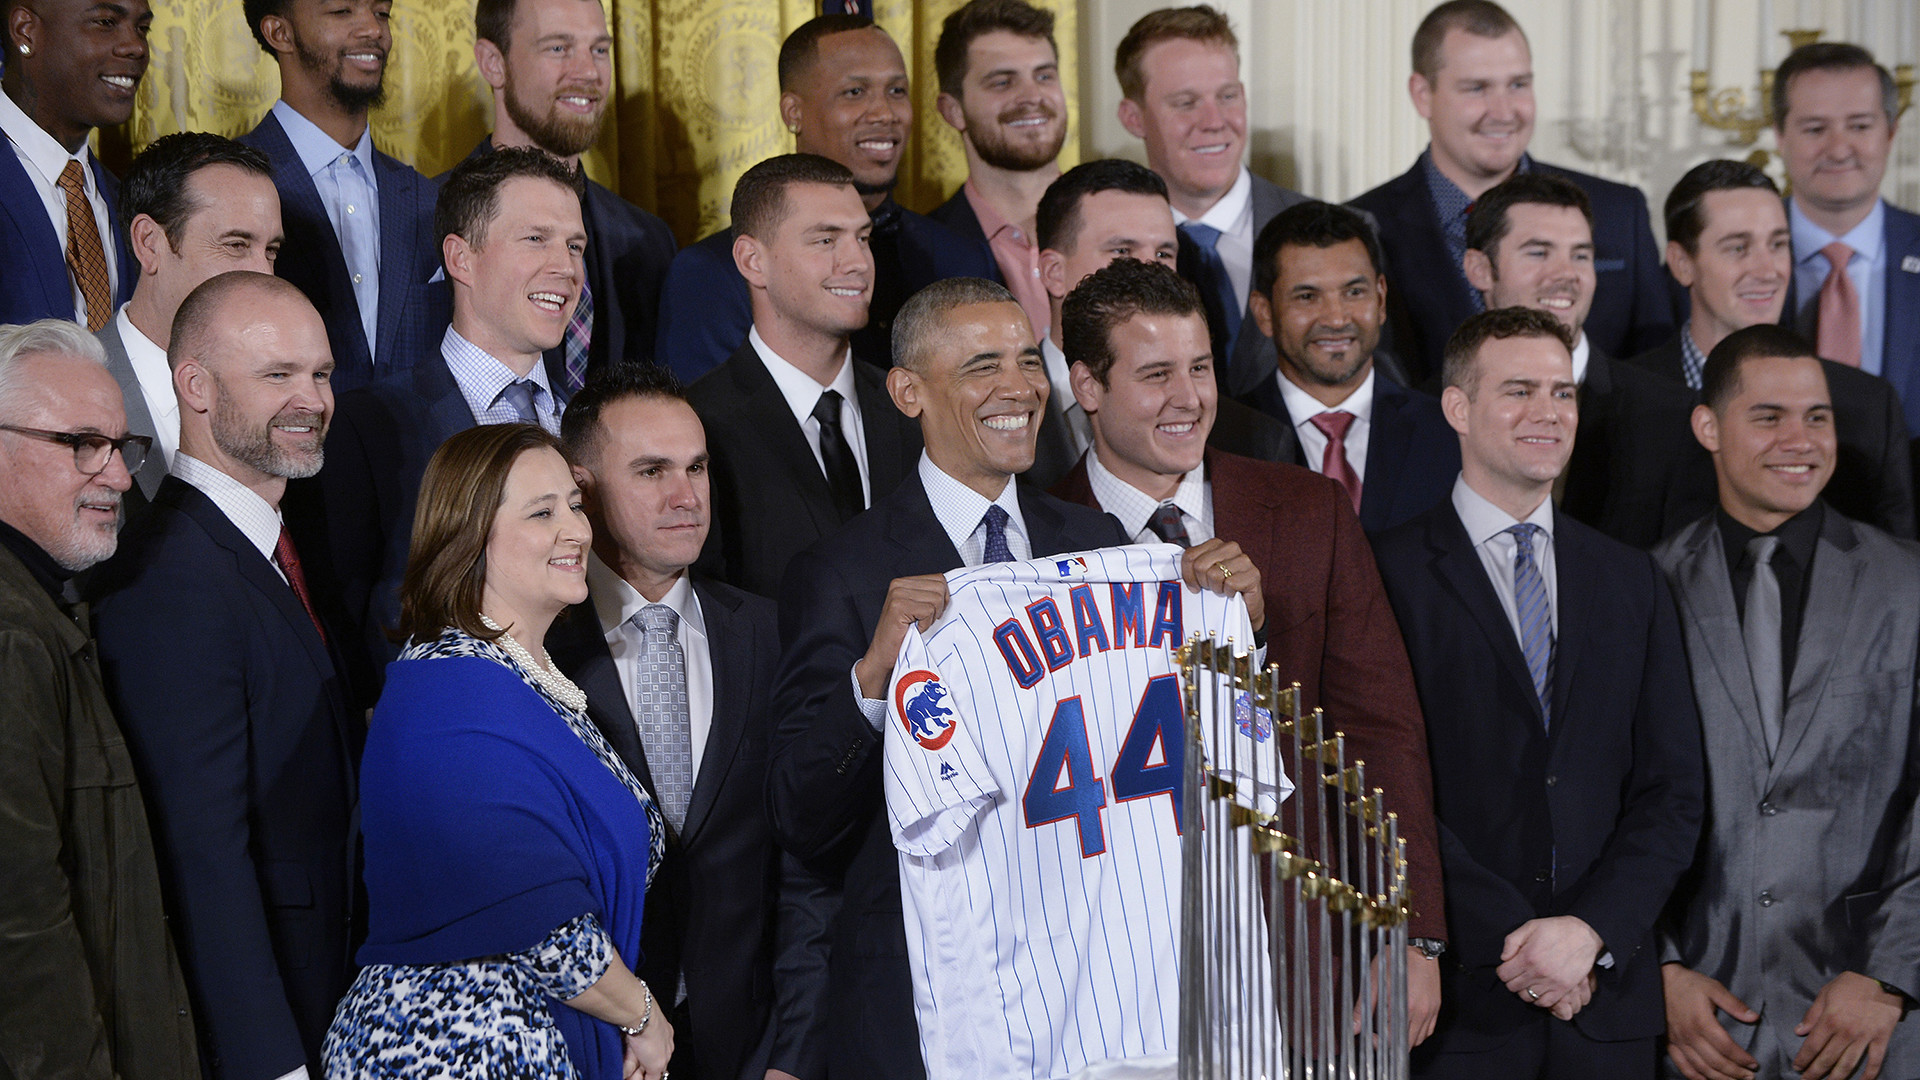 Ct-obama-sports-cubs-white-house-spt-0117-20170116